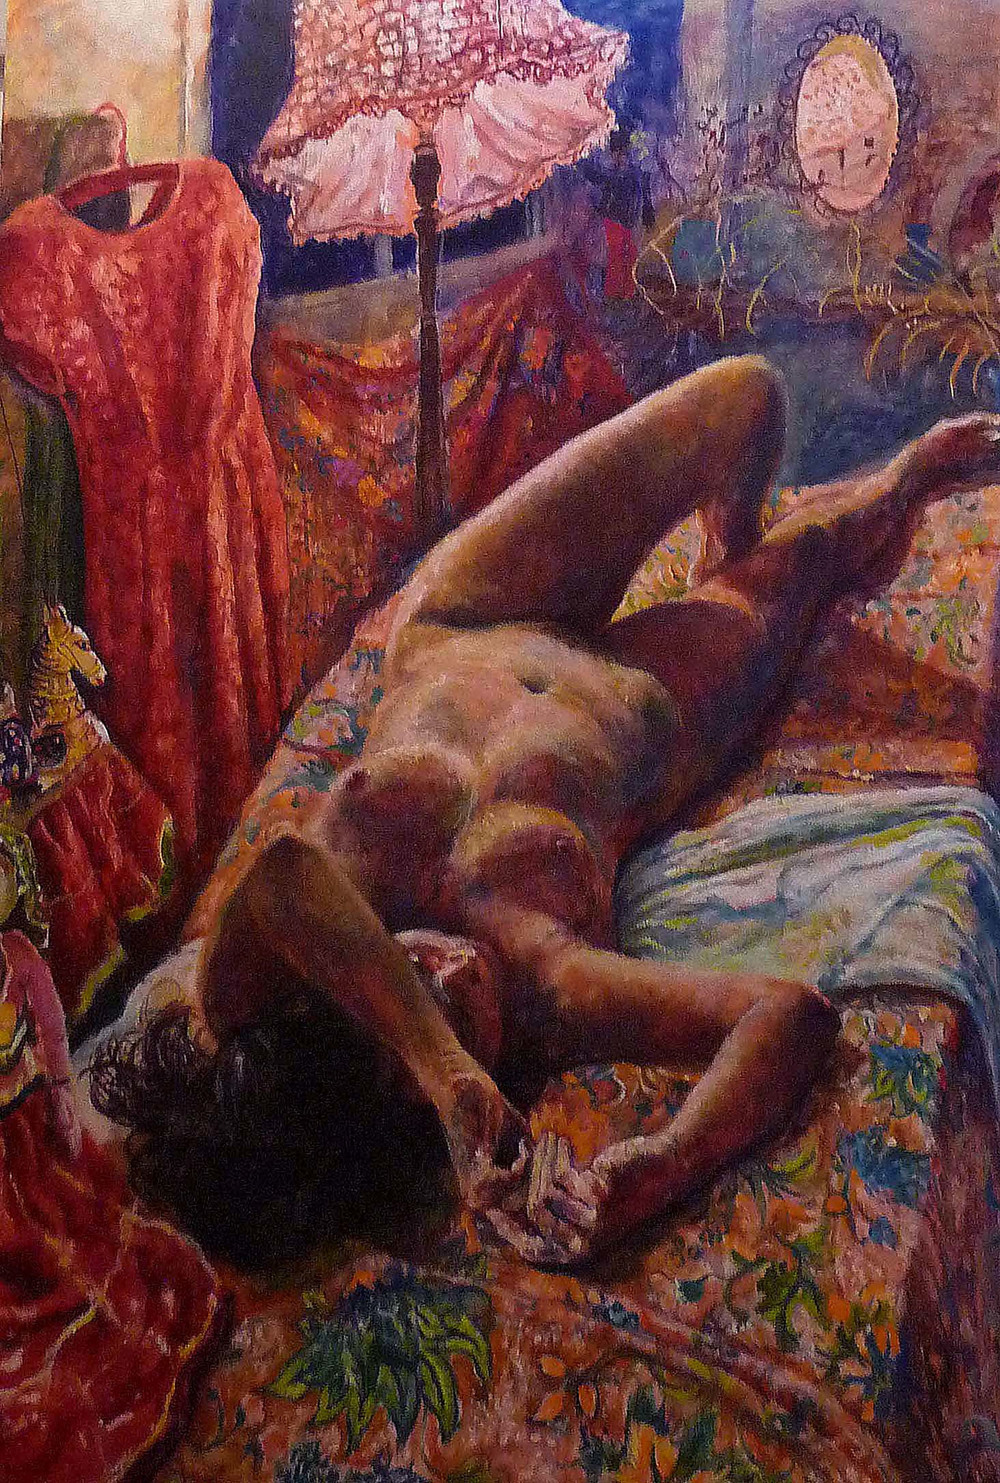 Sarah Longley_-_Nude by Lamplight_oil on board_155 x 108cm.jpg